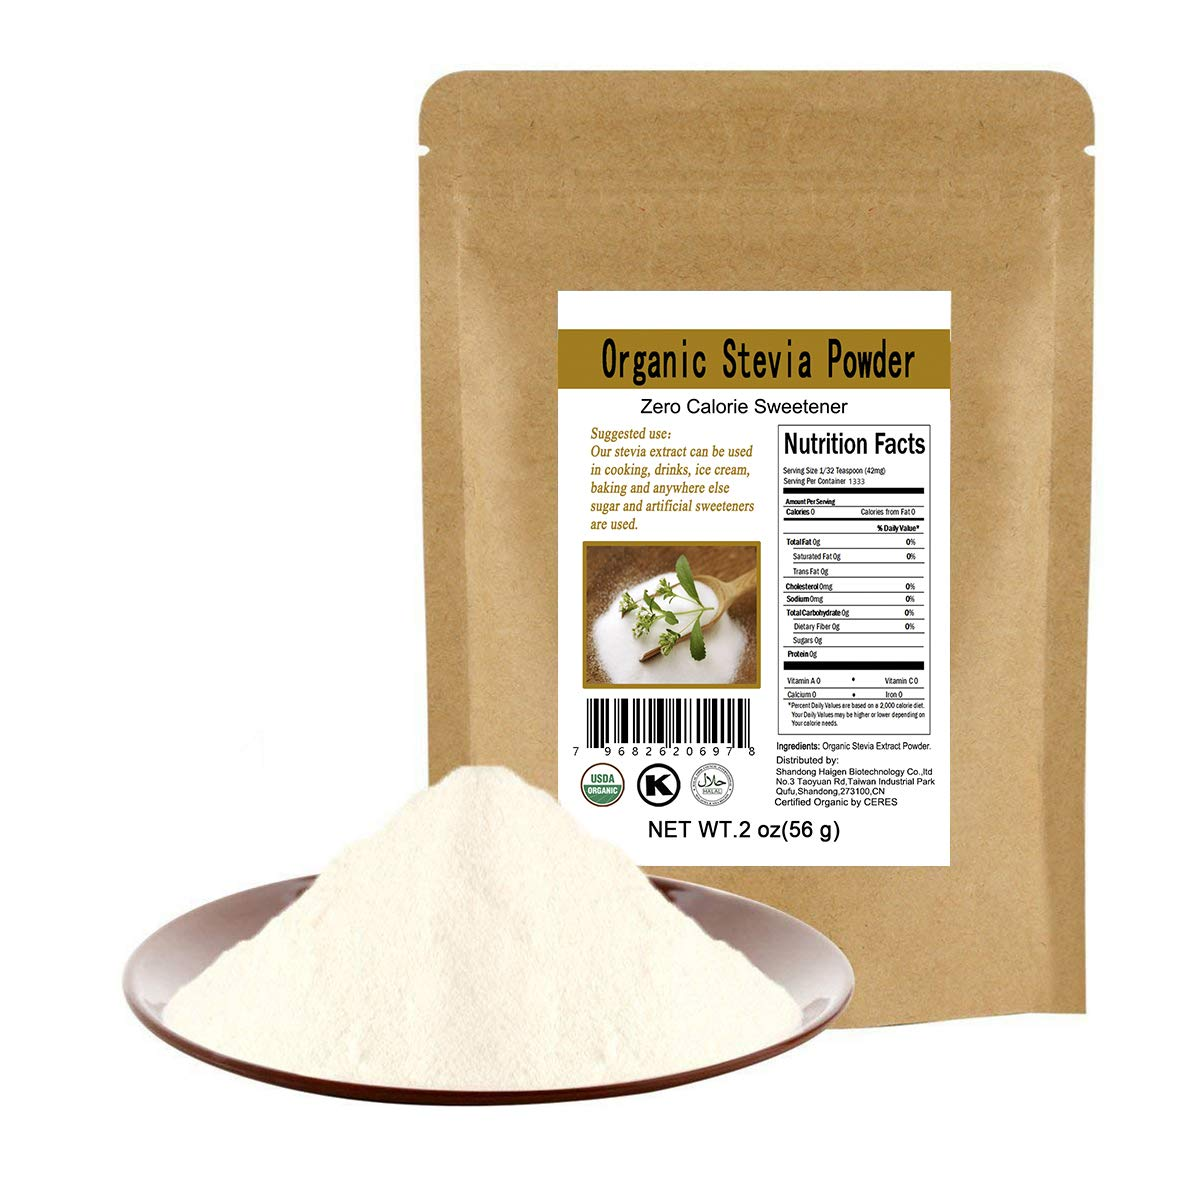 CCnature Organic Stevia Powder Extract Natural Sweetener Zero Calorie Sugar Substitute 2oz by CCnature (Image #1)